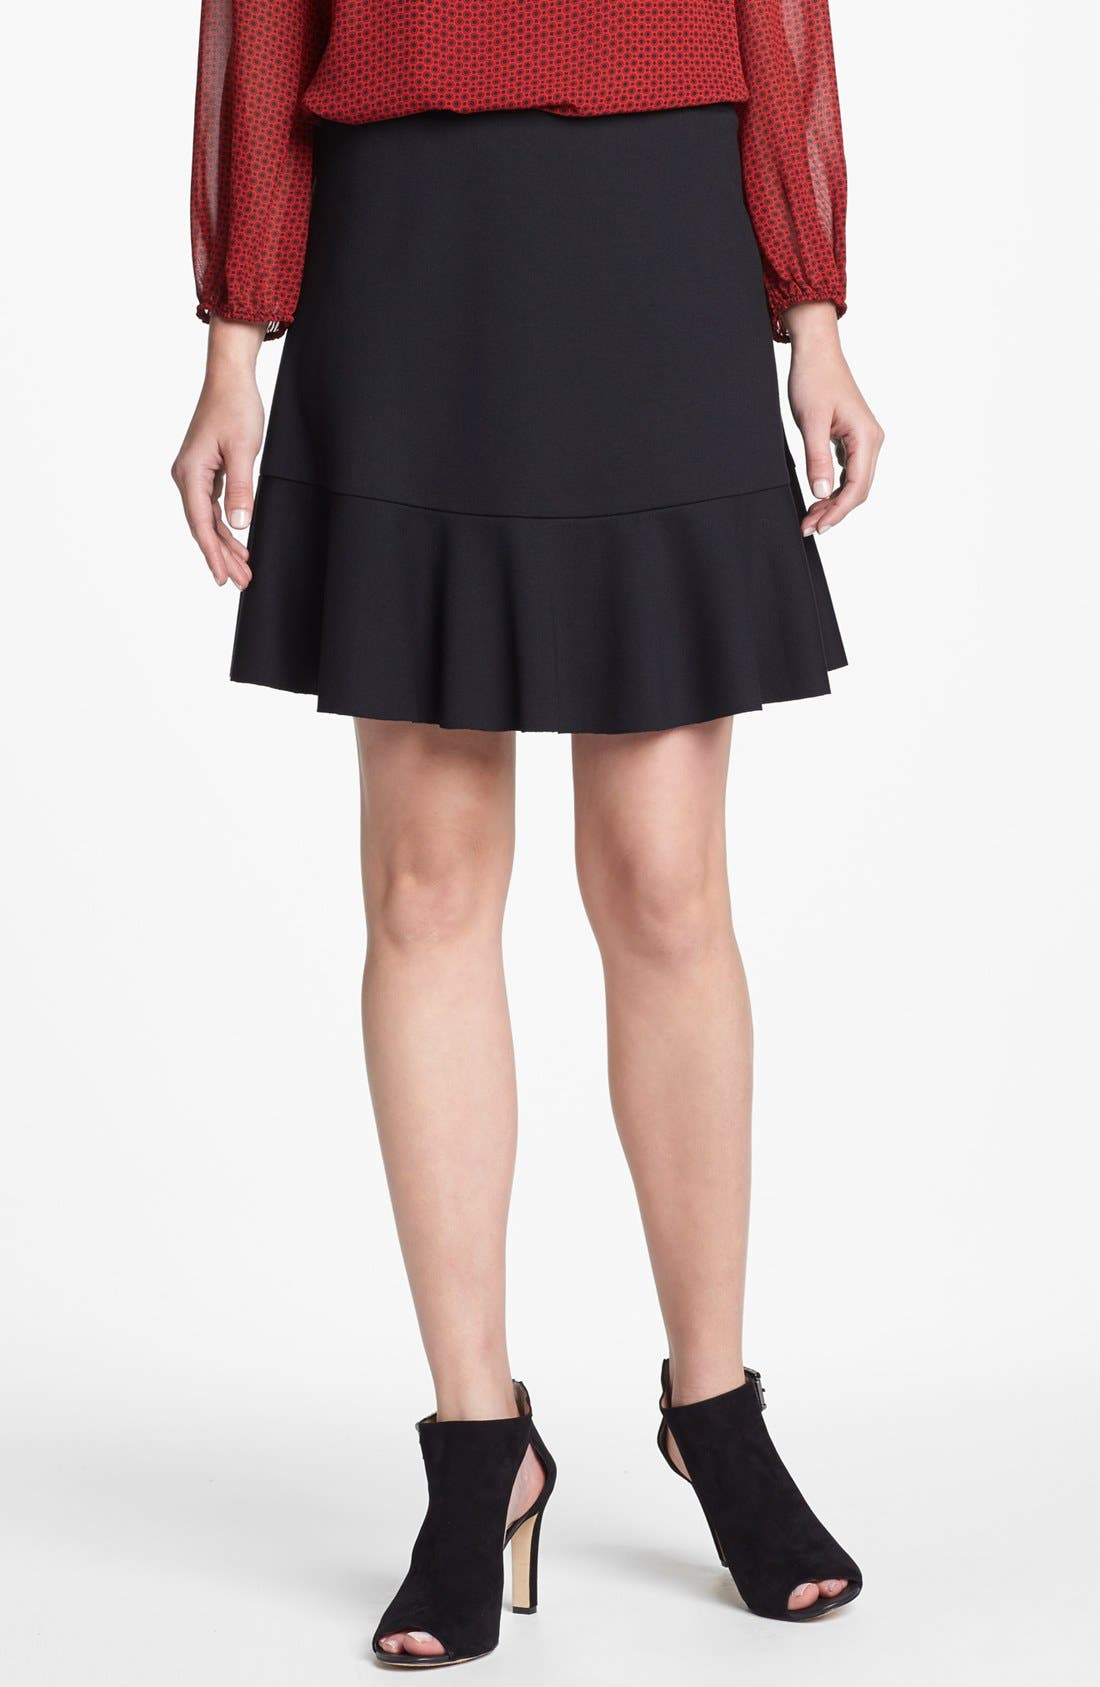 Alternate Image 1 Selected - Vince Camuto Ruffle A-Line Skirt (Nordstrom Exclusive)